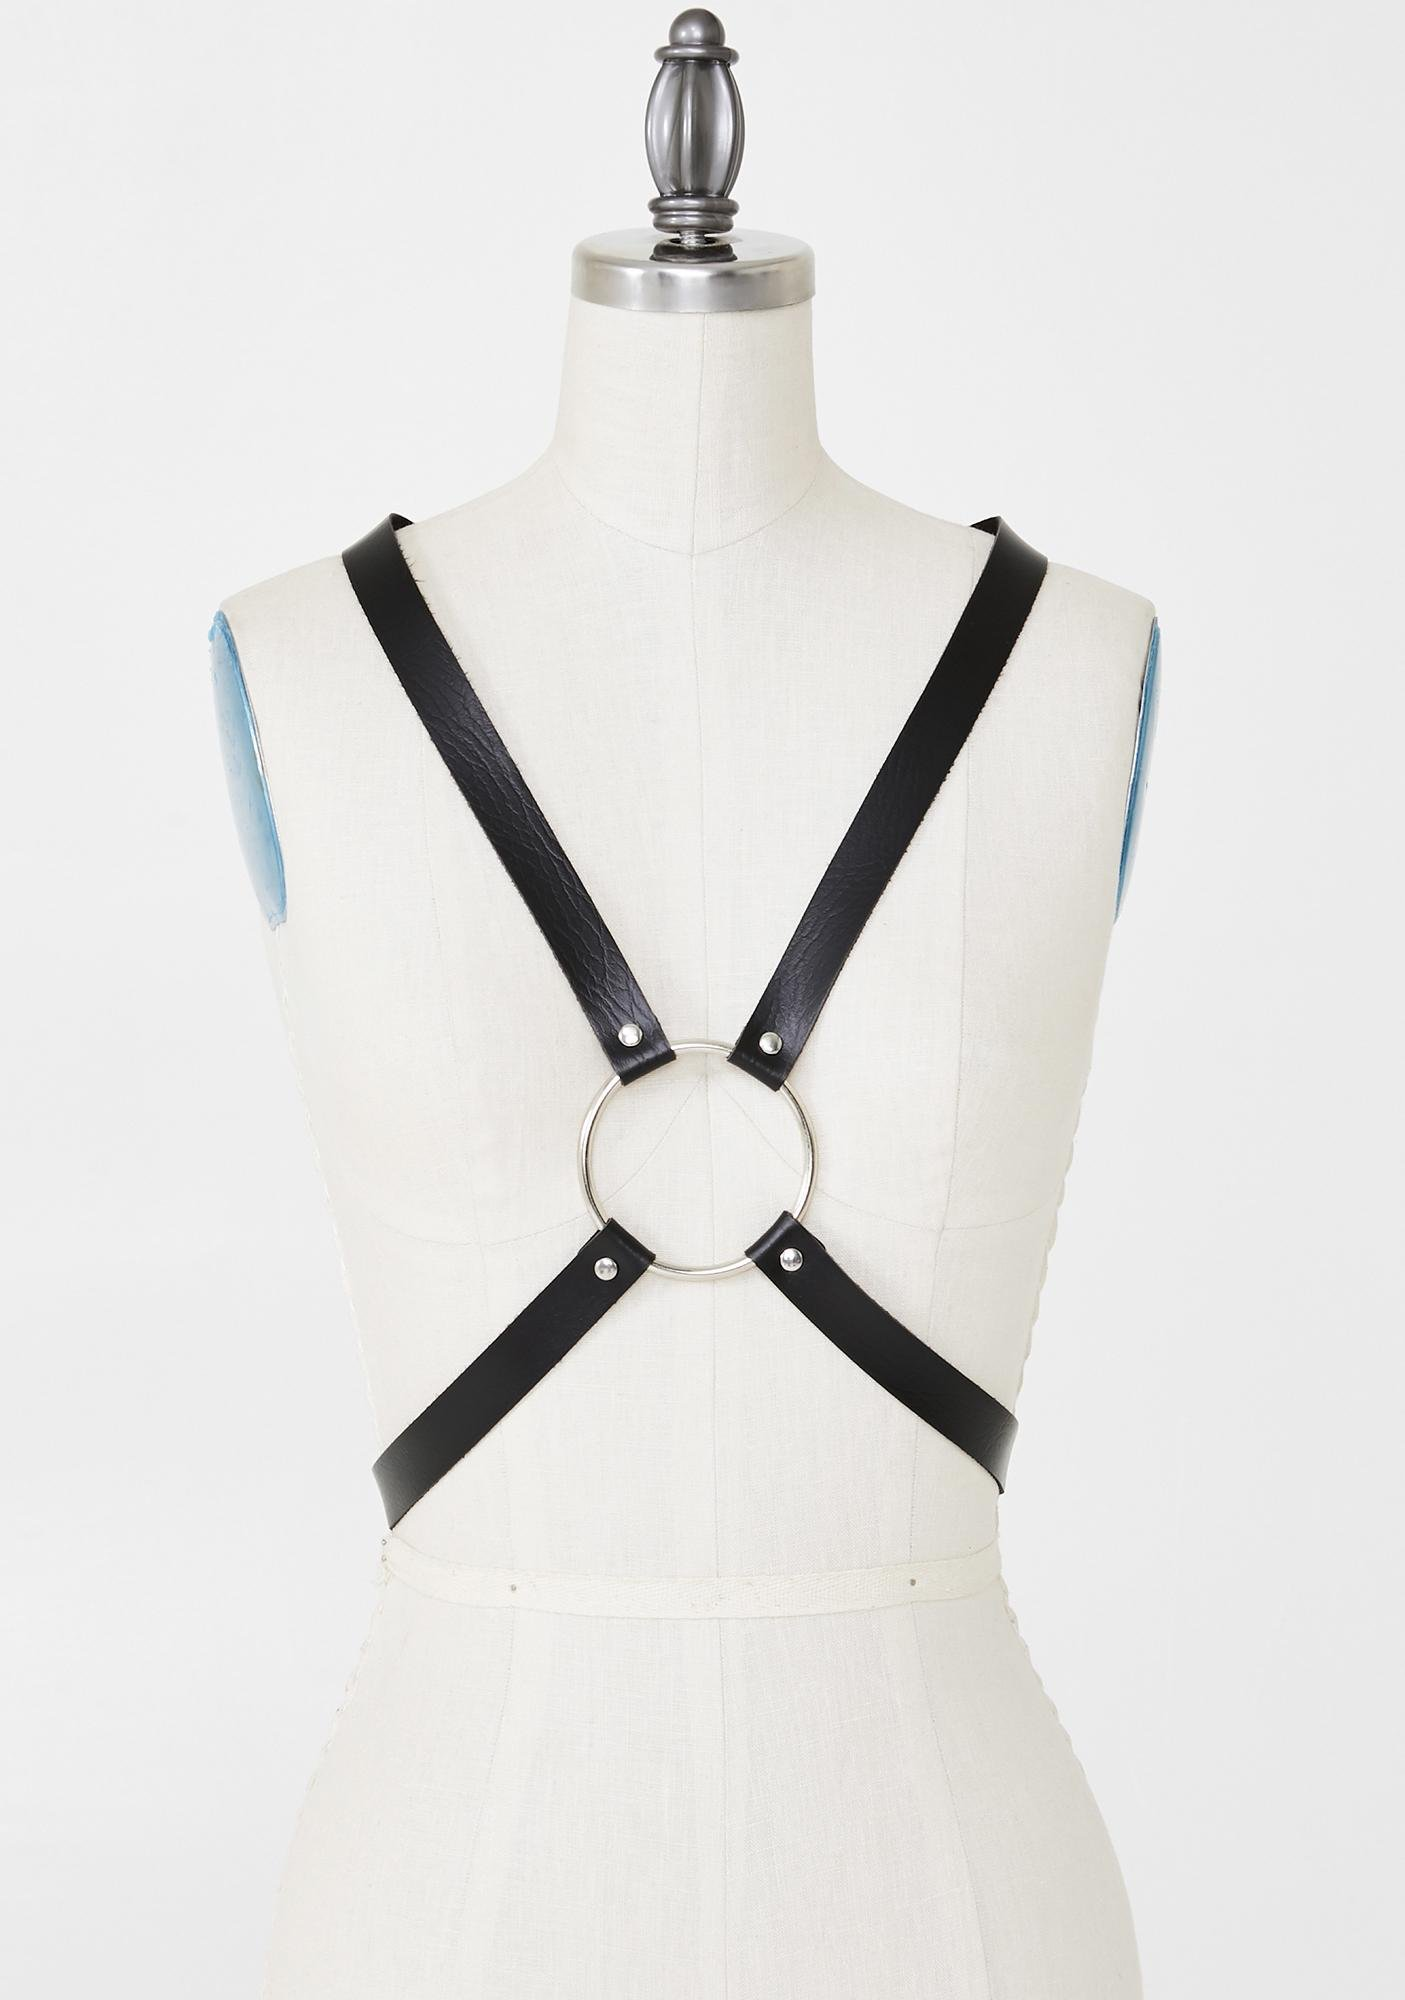 Obedient Nymph O-Ring Harness